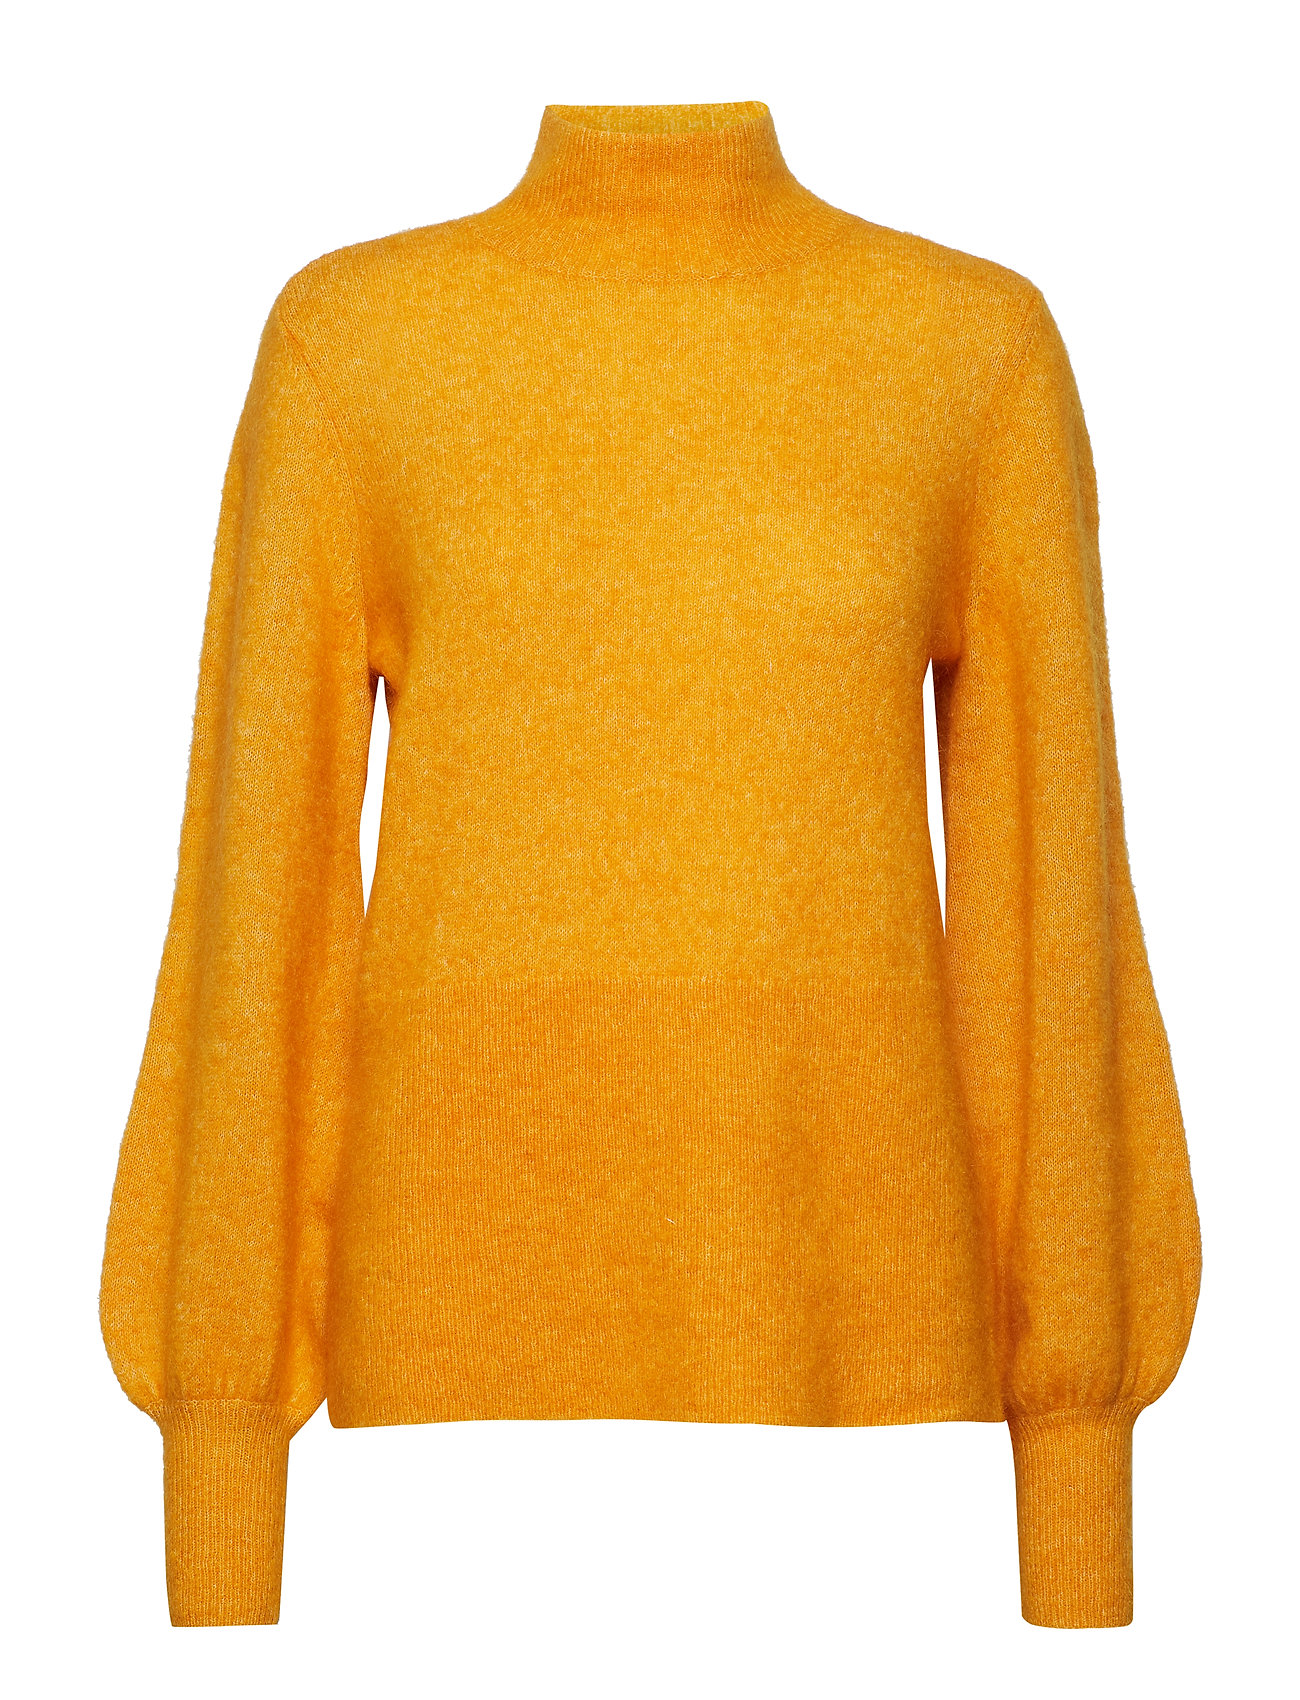 YellowJust Theo Knitgolden Theo Theo YellowJust Female Knitgolden Female Knitgolden WDHbEYI29e